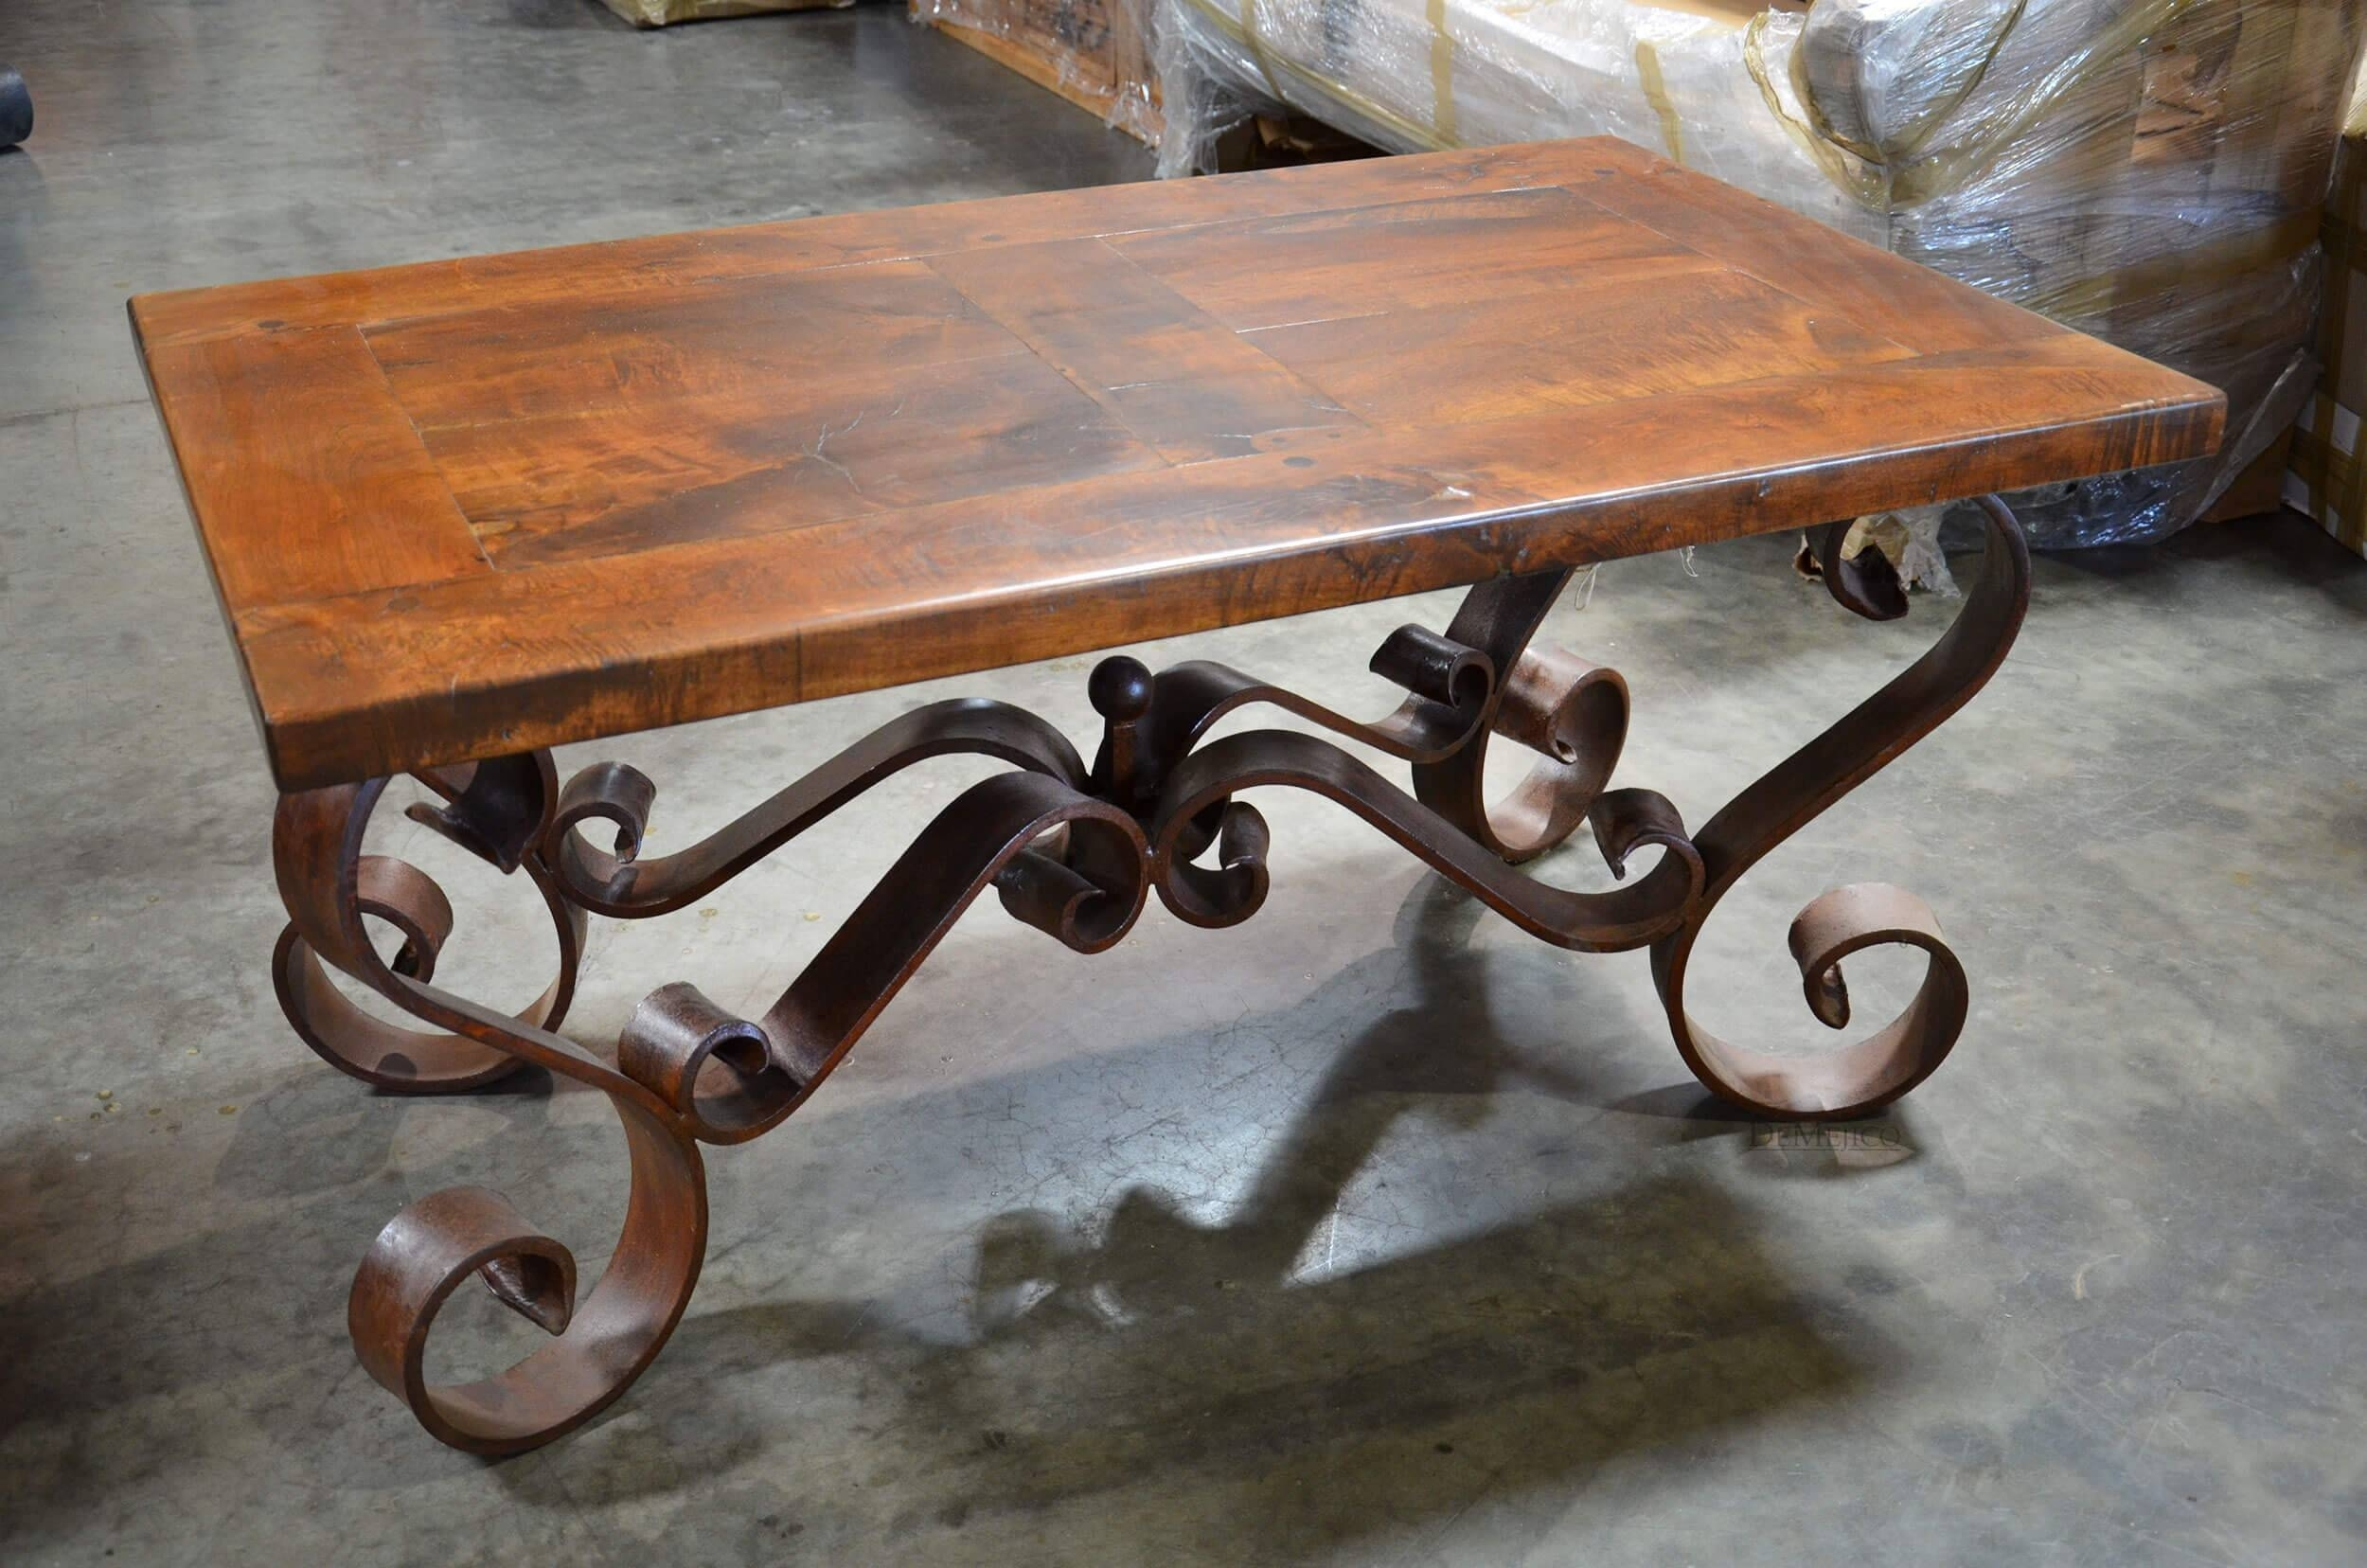 Two Colored Wrought Iron Coffee Table U2014 Coffee Tables Ideas